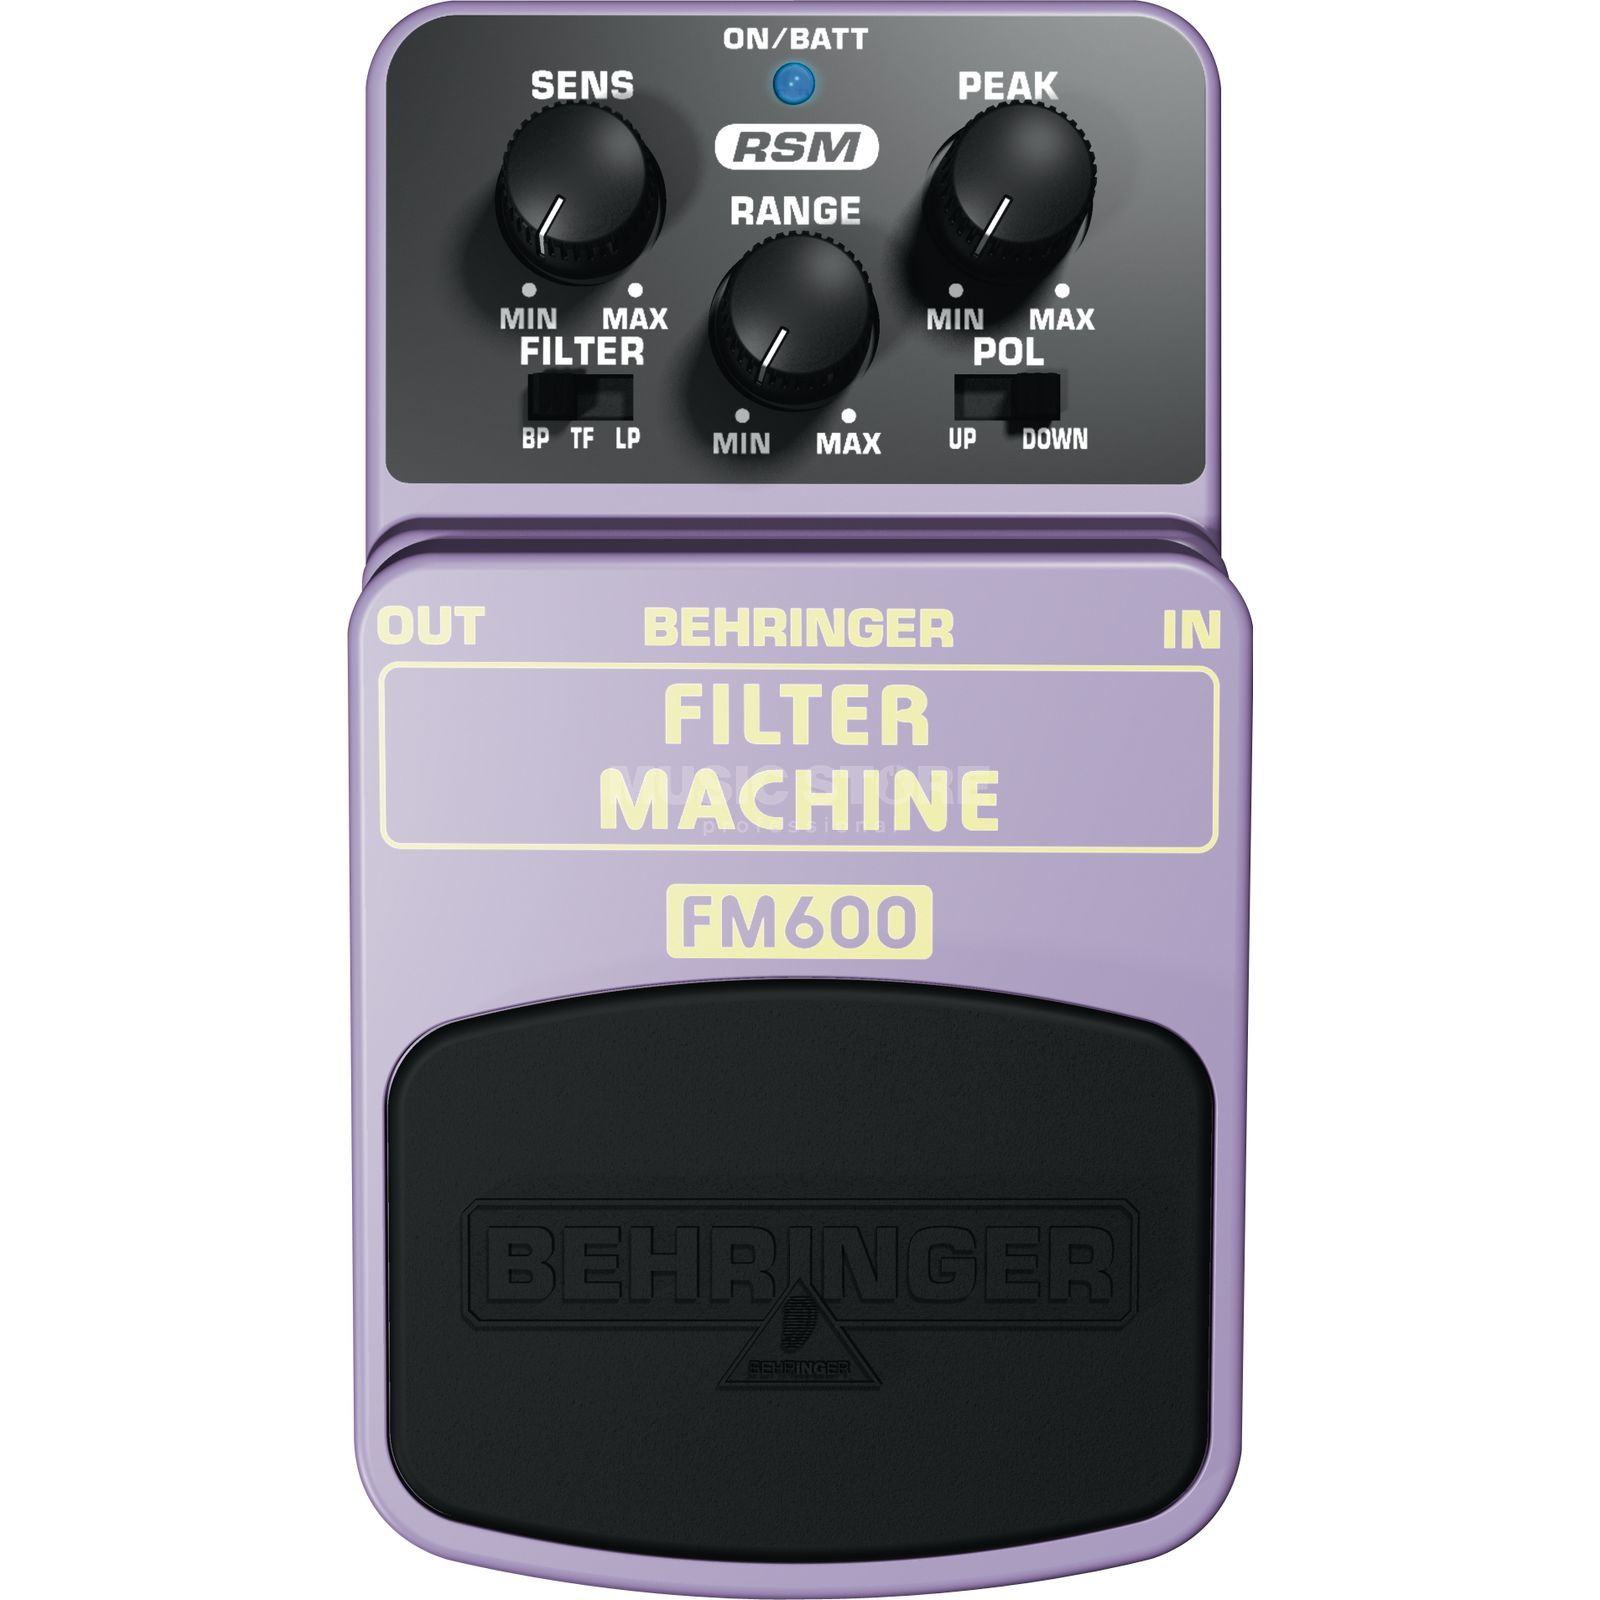 Behringer FM600 Filter Machine Produktbild